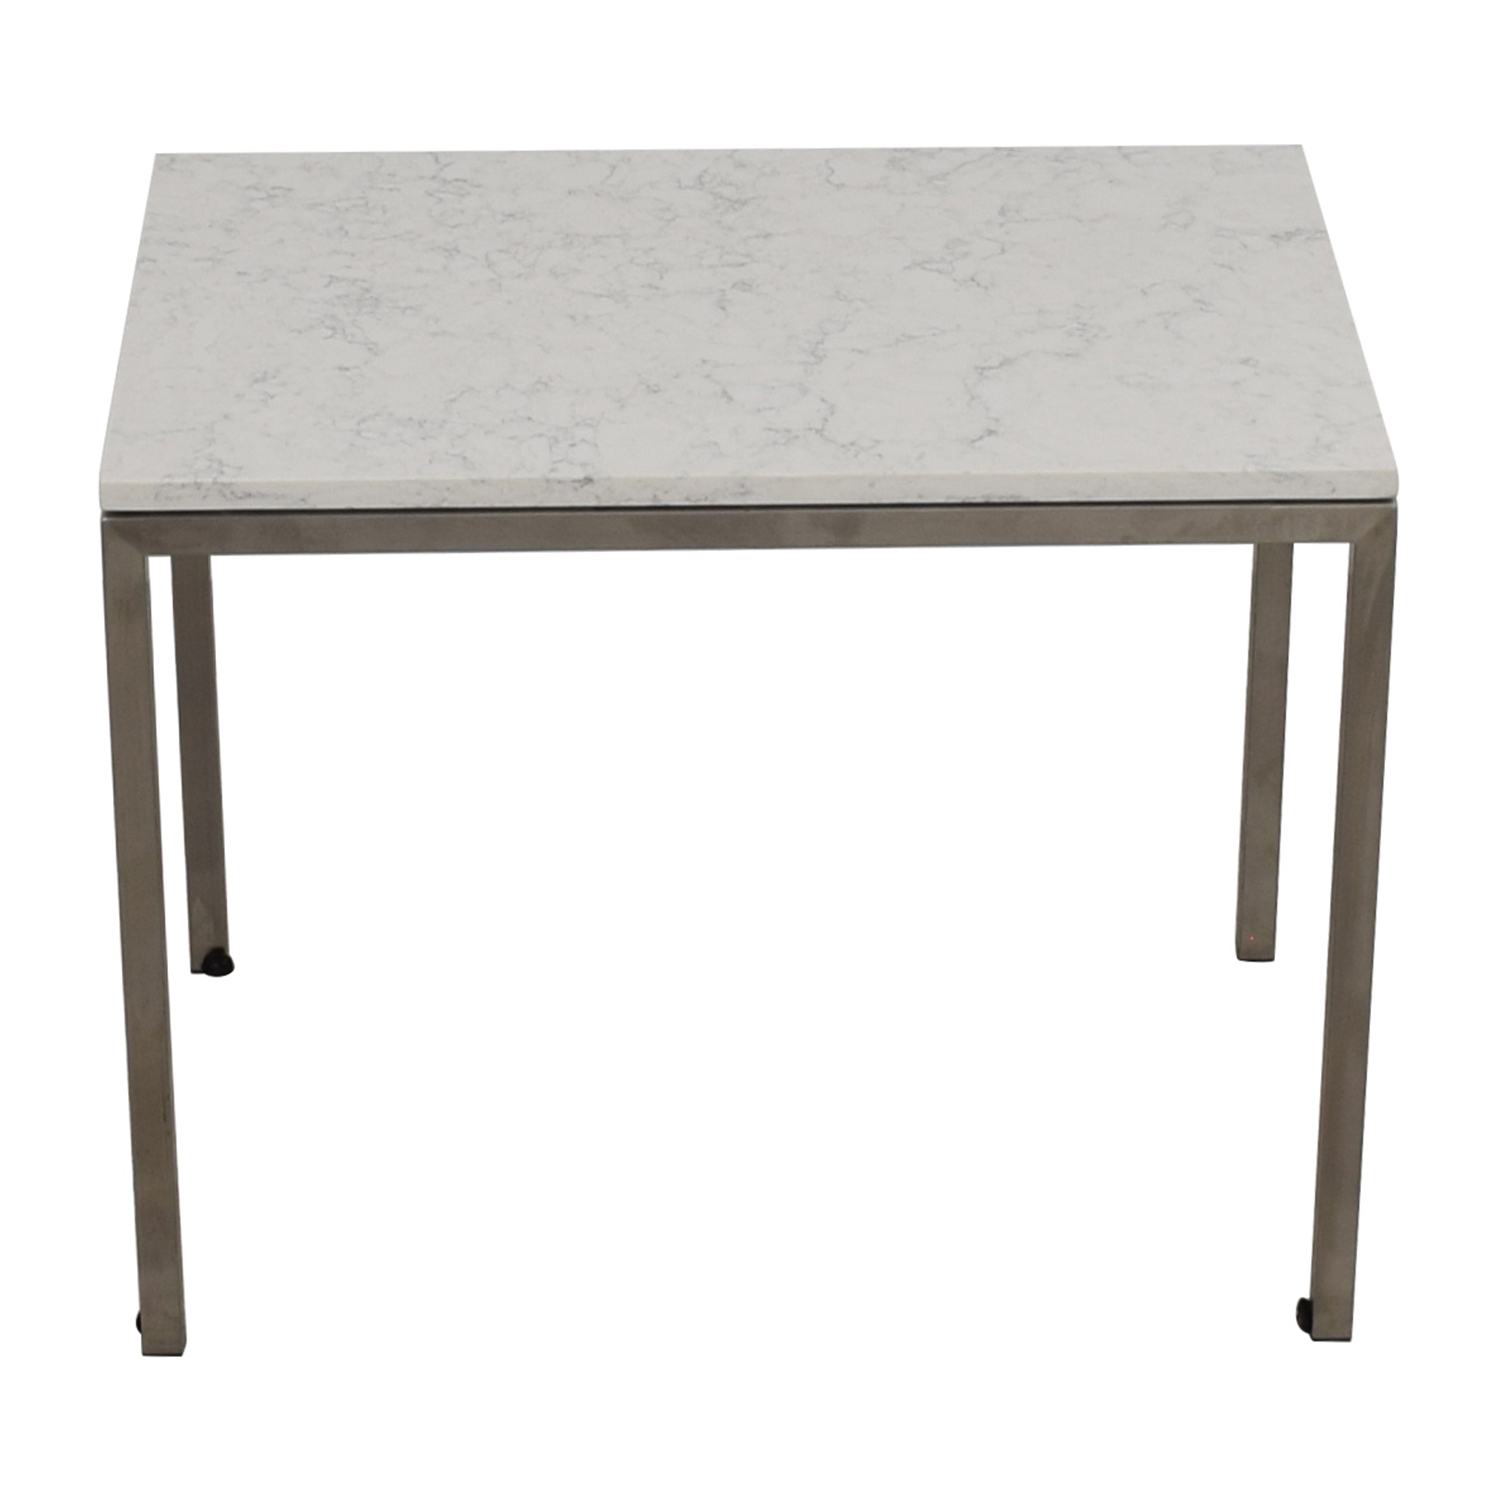 Room & Board Portica Table with White Marbled Quartz Composite Top / Sofas